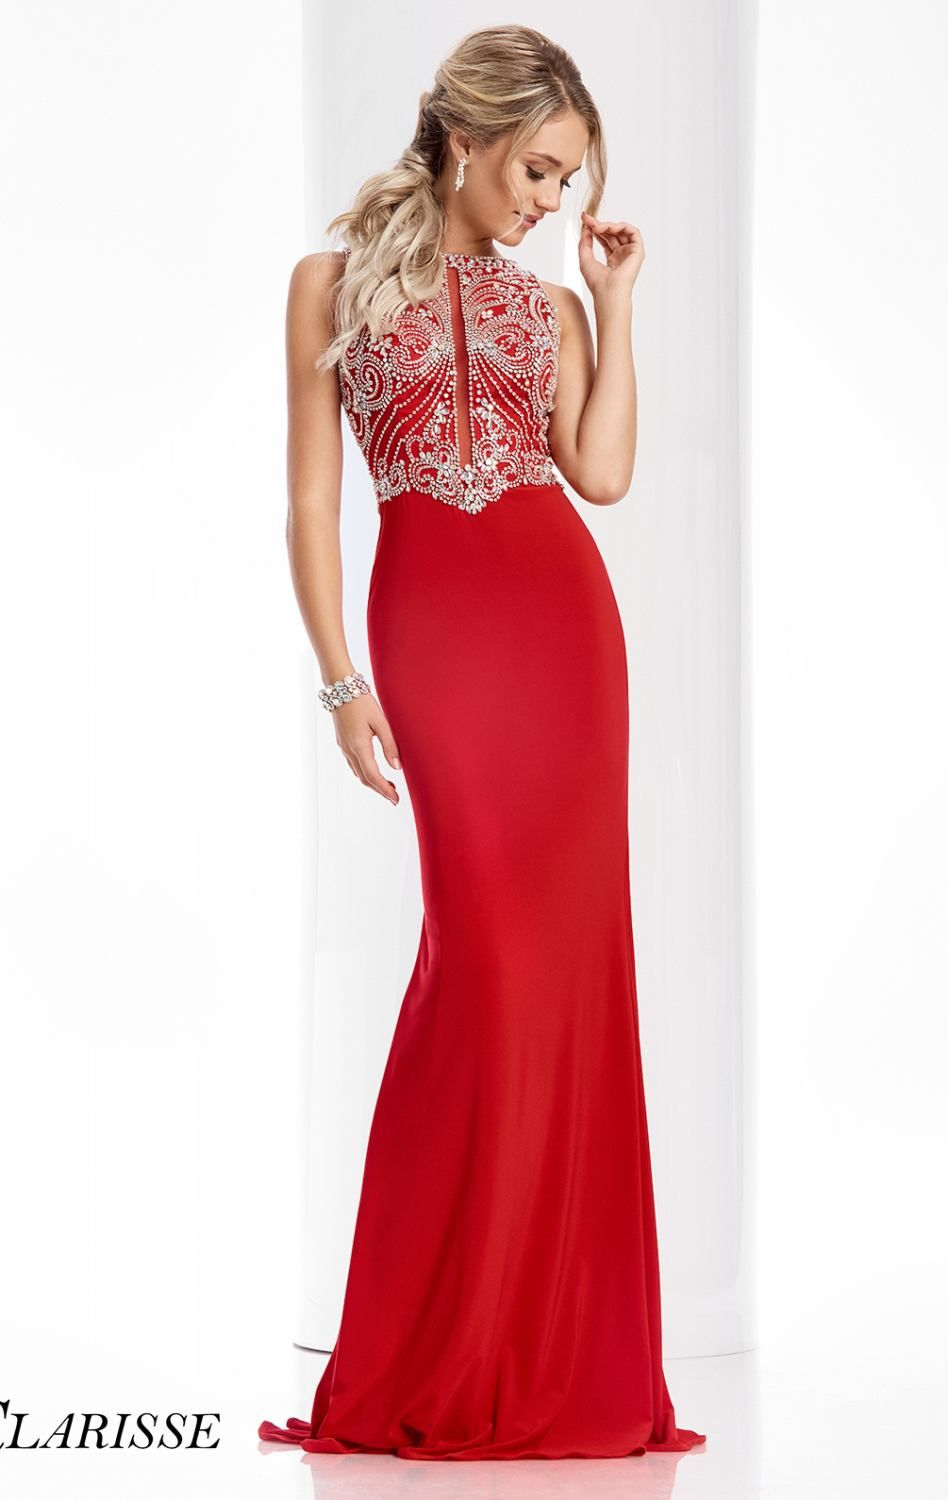 Clarisse by clarisse red dresses pinterest formal wear